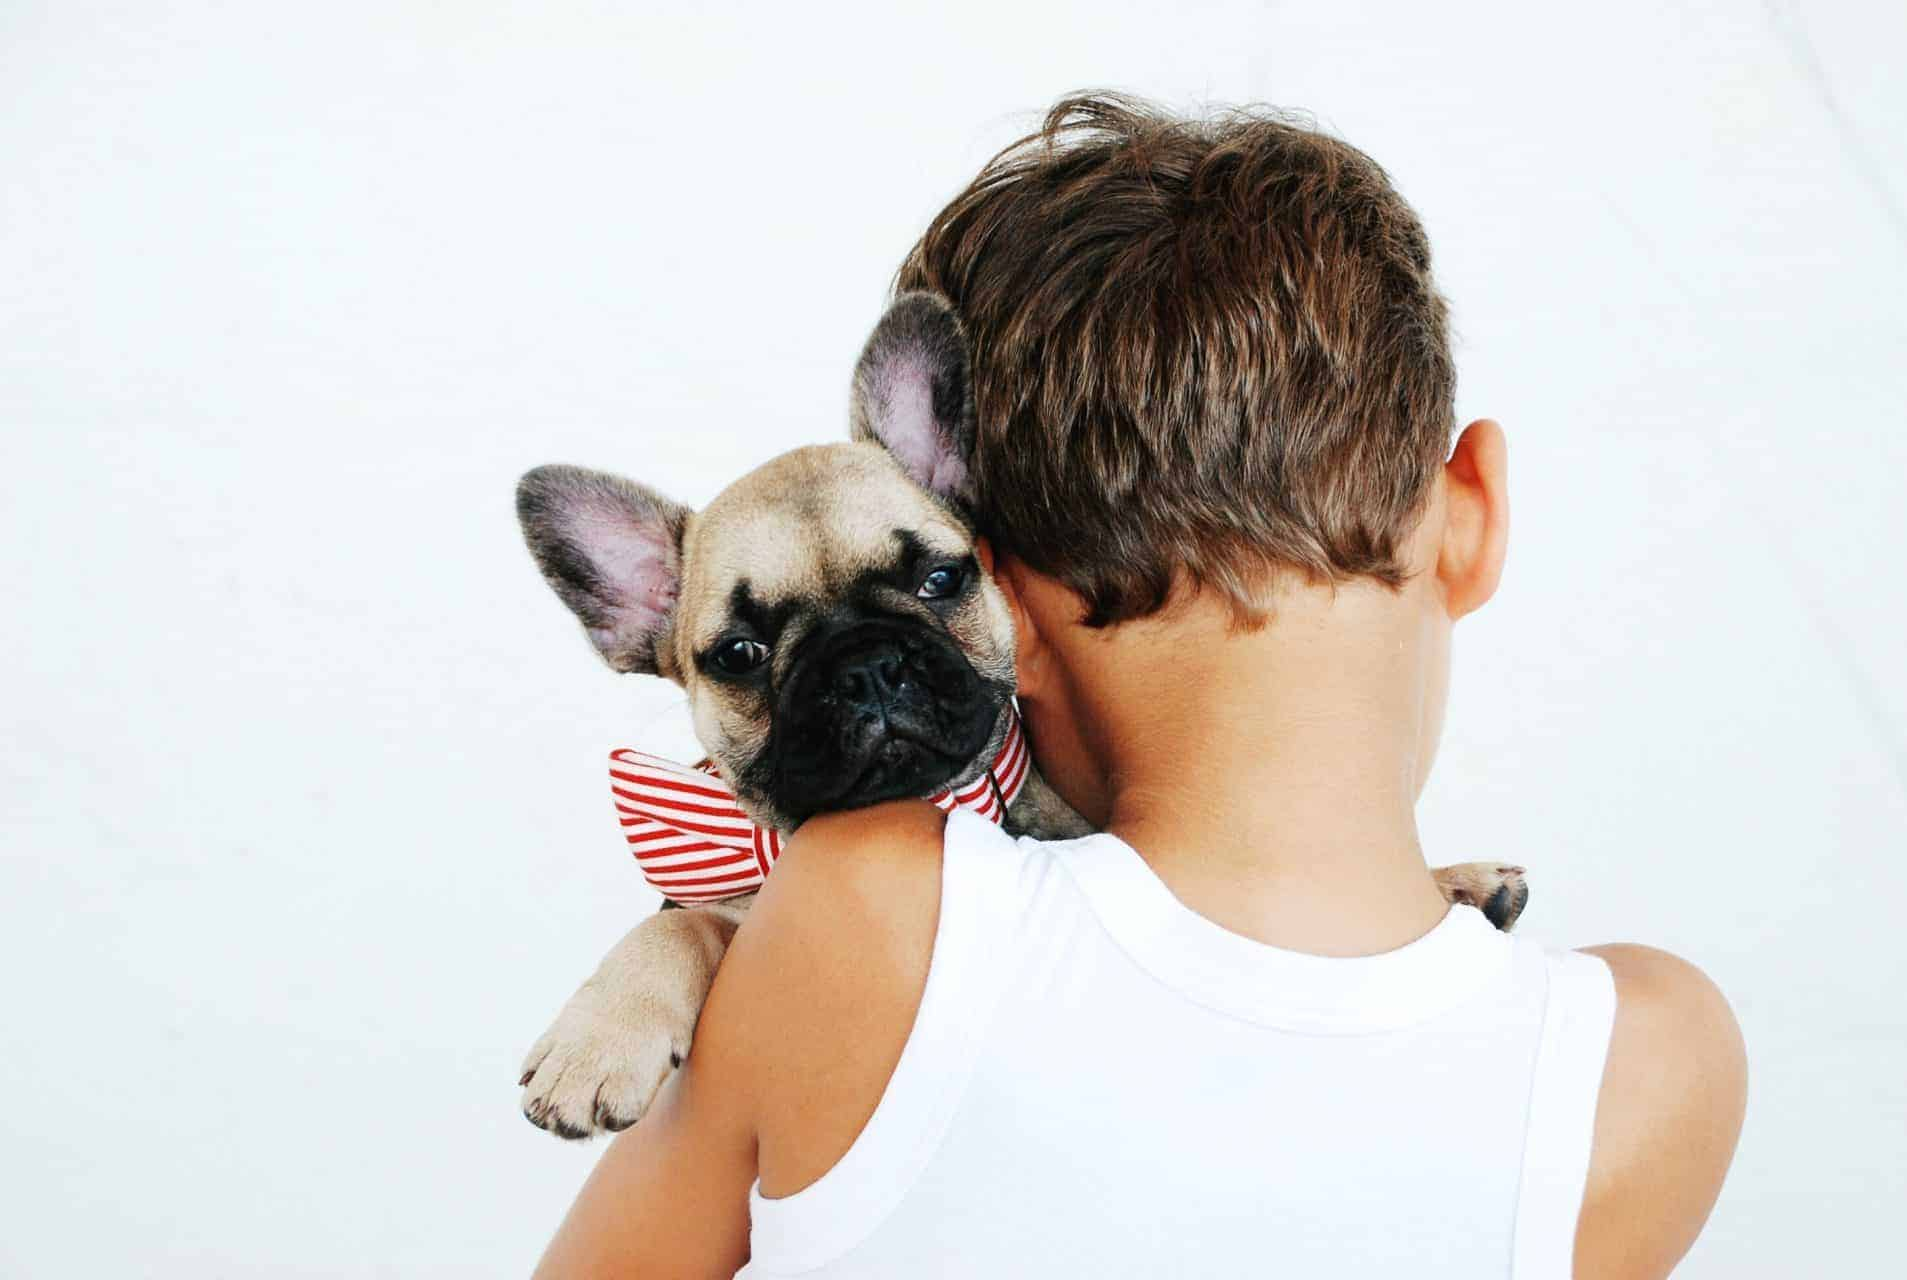 Boy wearing a white tank top faces away from the camera while holding a french bulldog in his arms wearing a red striped bow